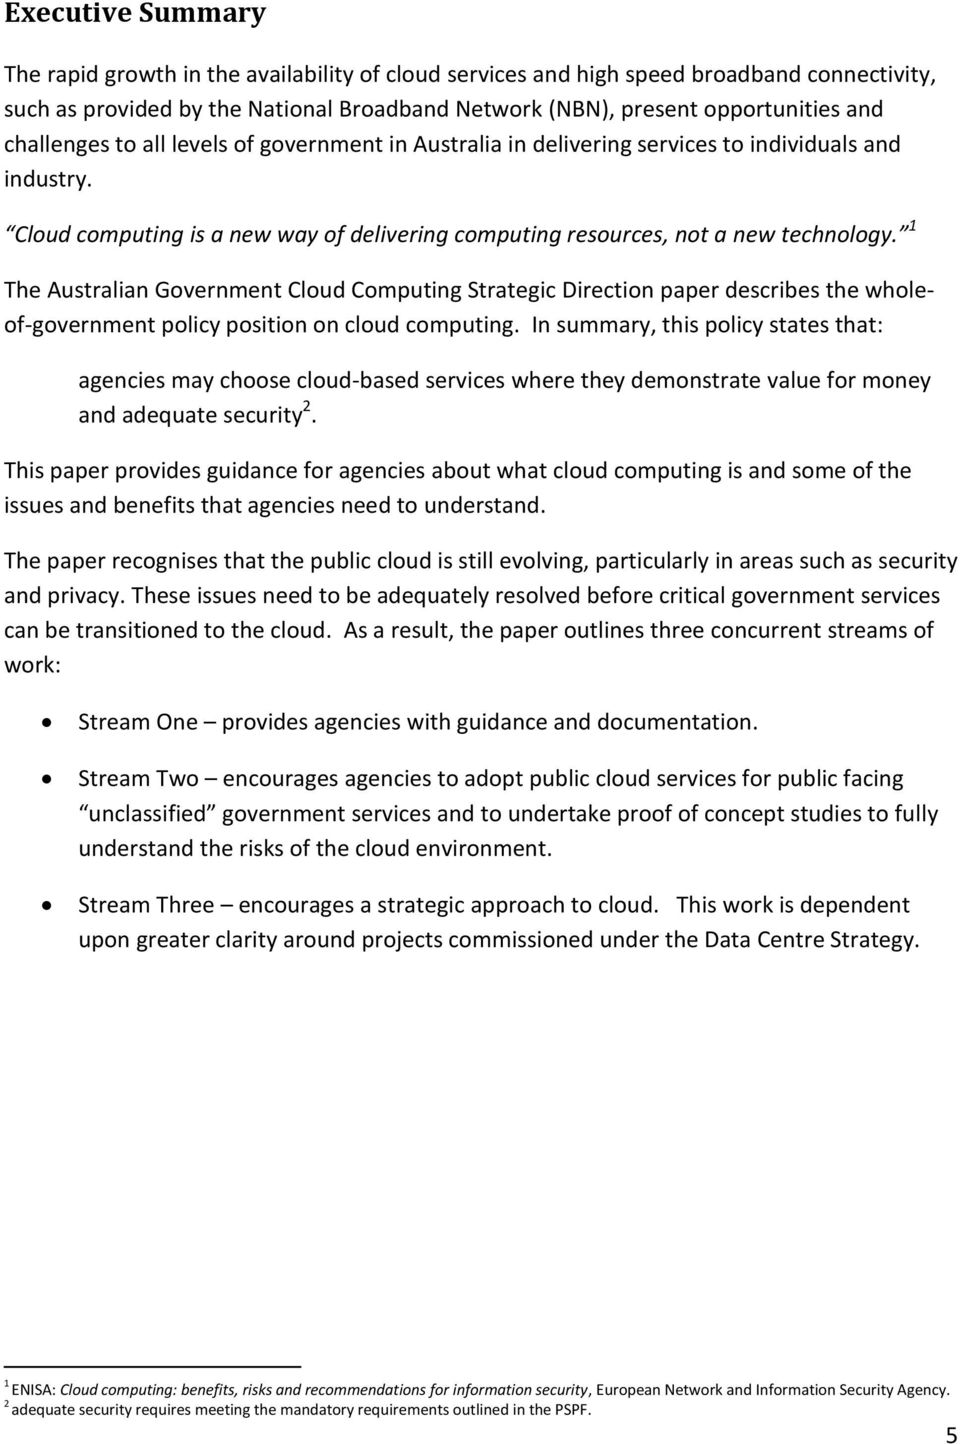 1 The Australian Government Cloud Computing Strategic Direction paper describes the wholeof-government policy position on cloud computing.